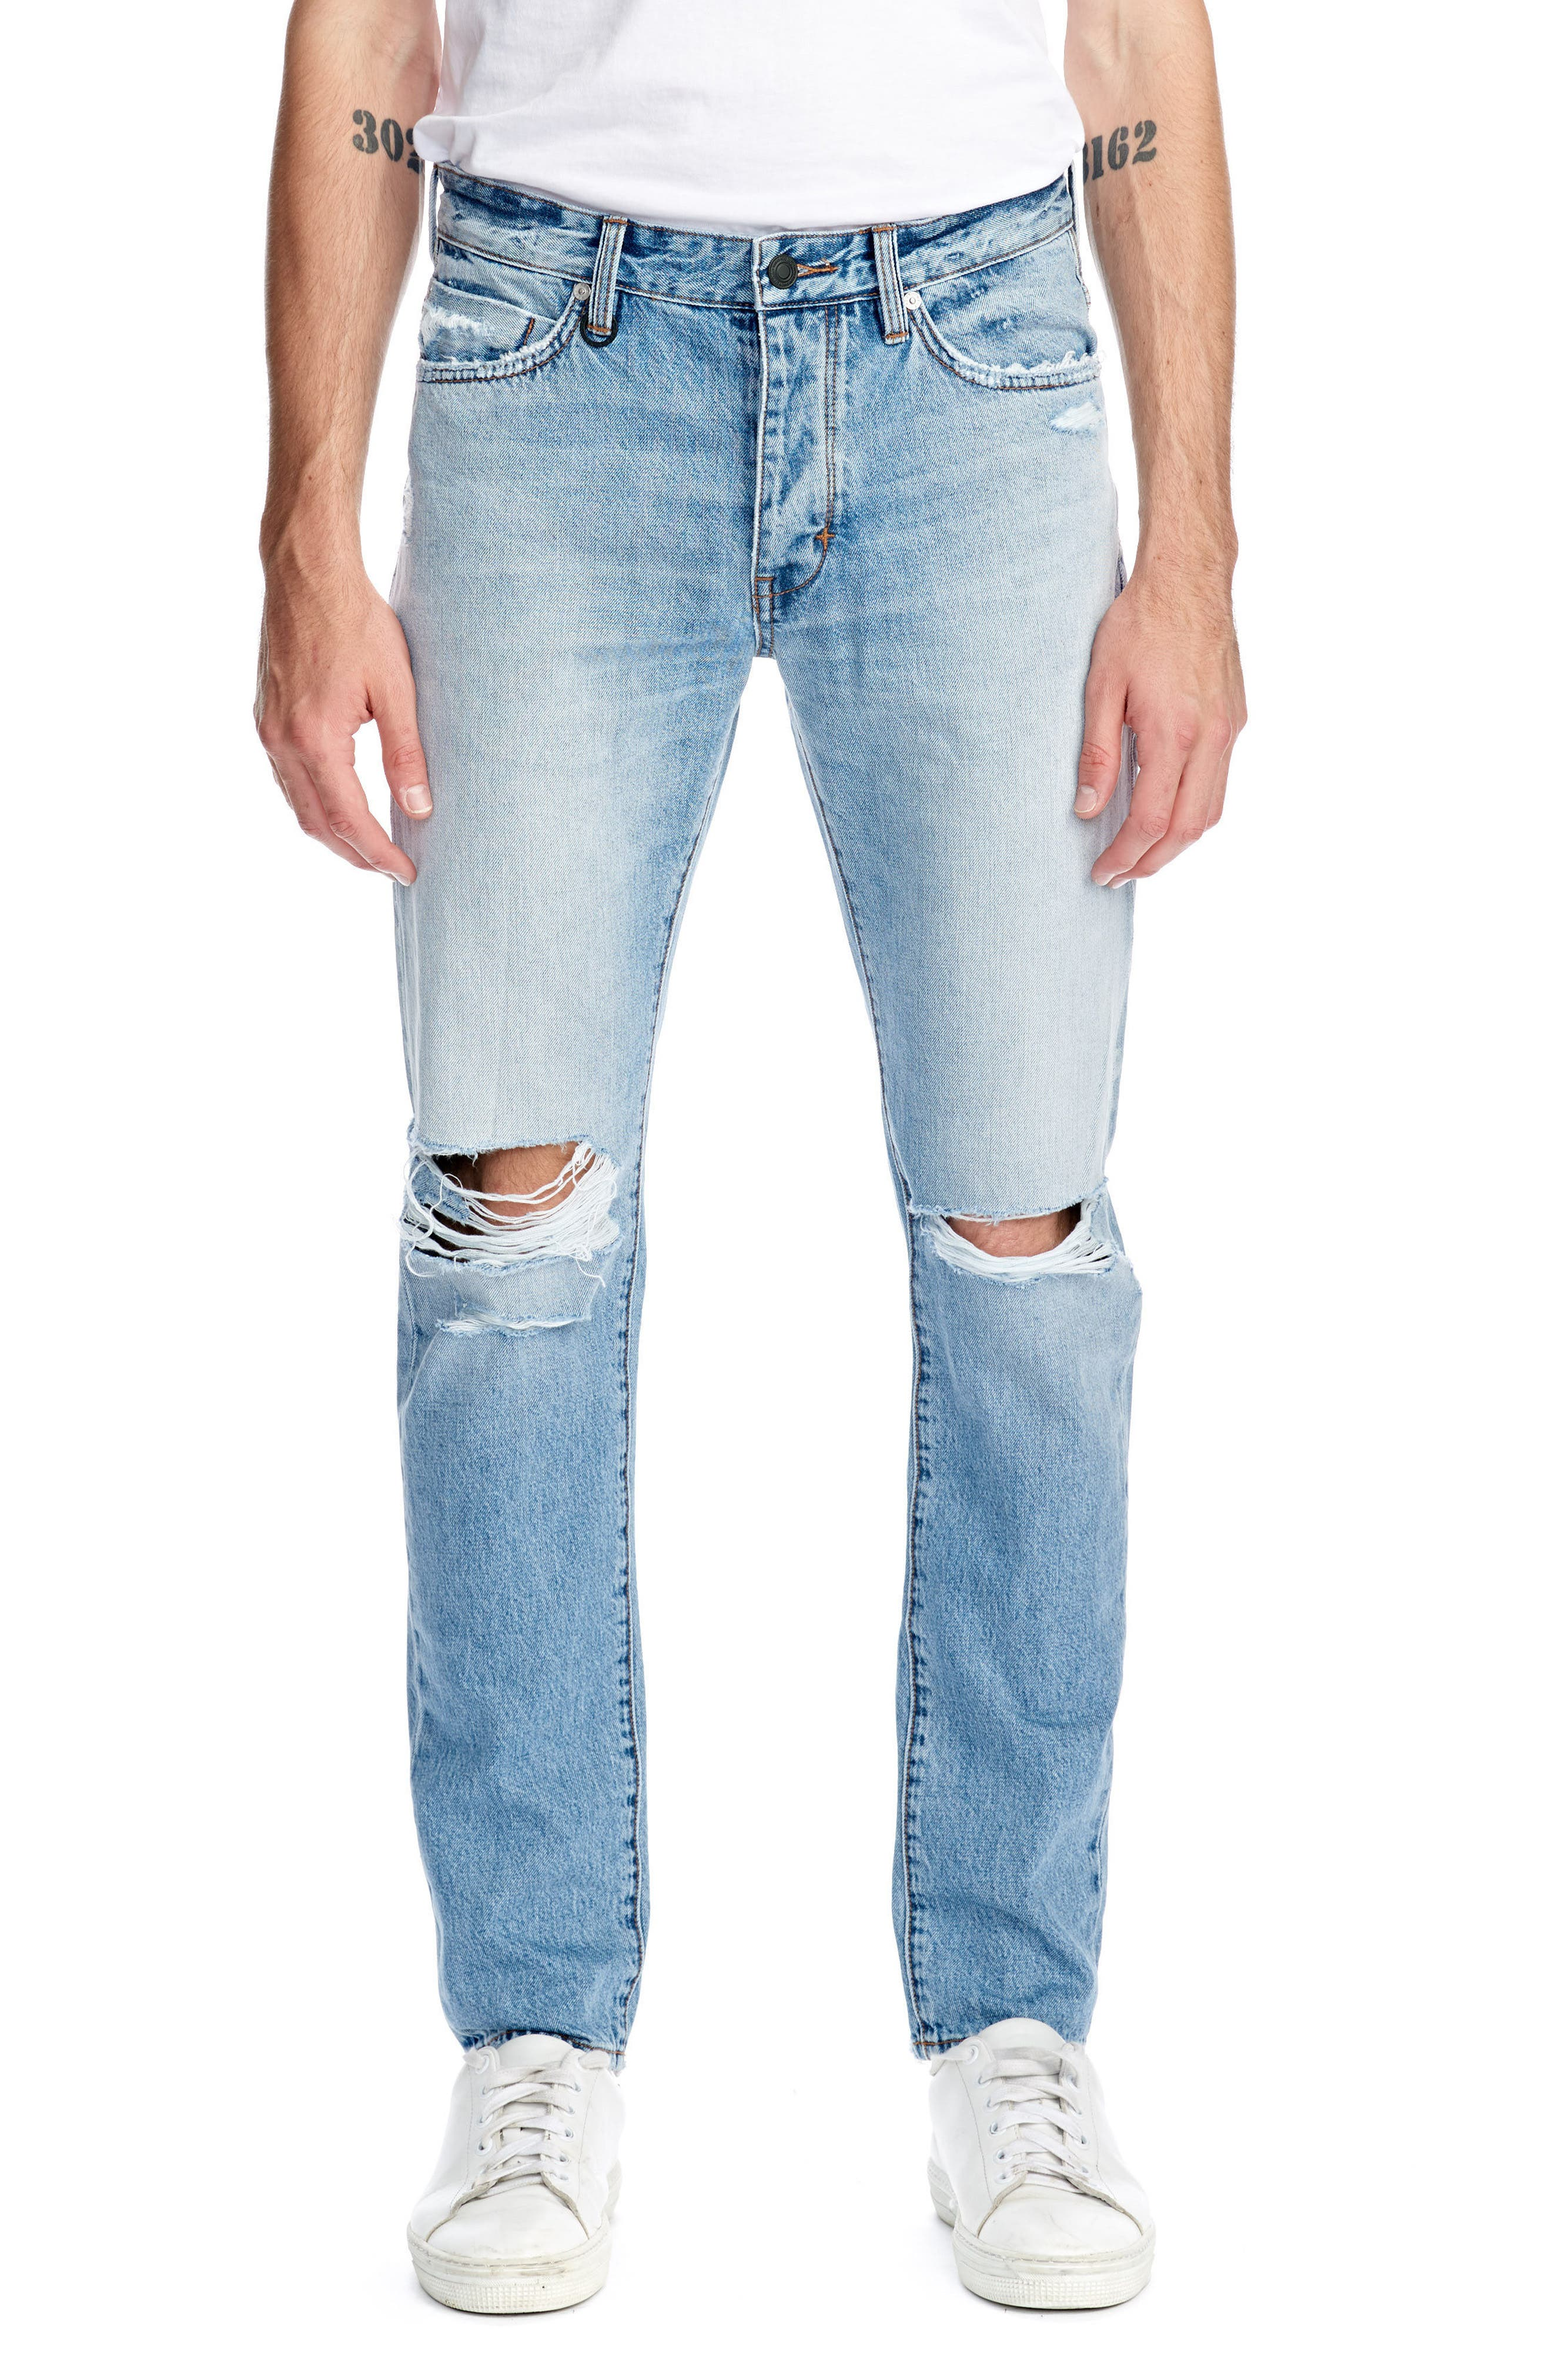 NEWU Lou Slim Fit Jeans,                             Main thumbnail 1, color,                             Stockholm Broken